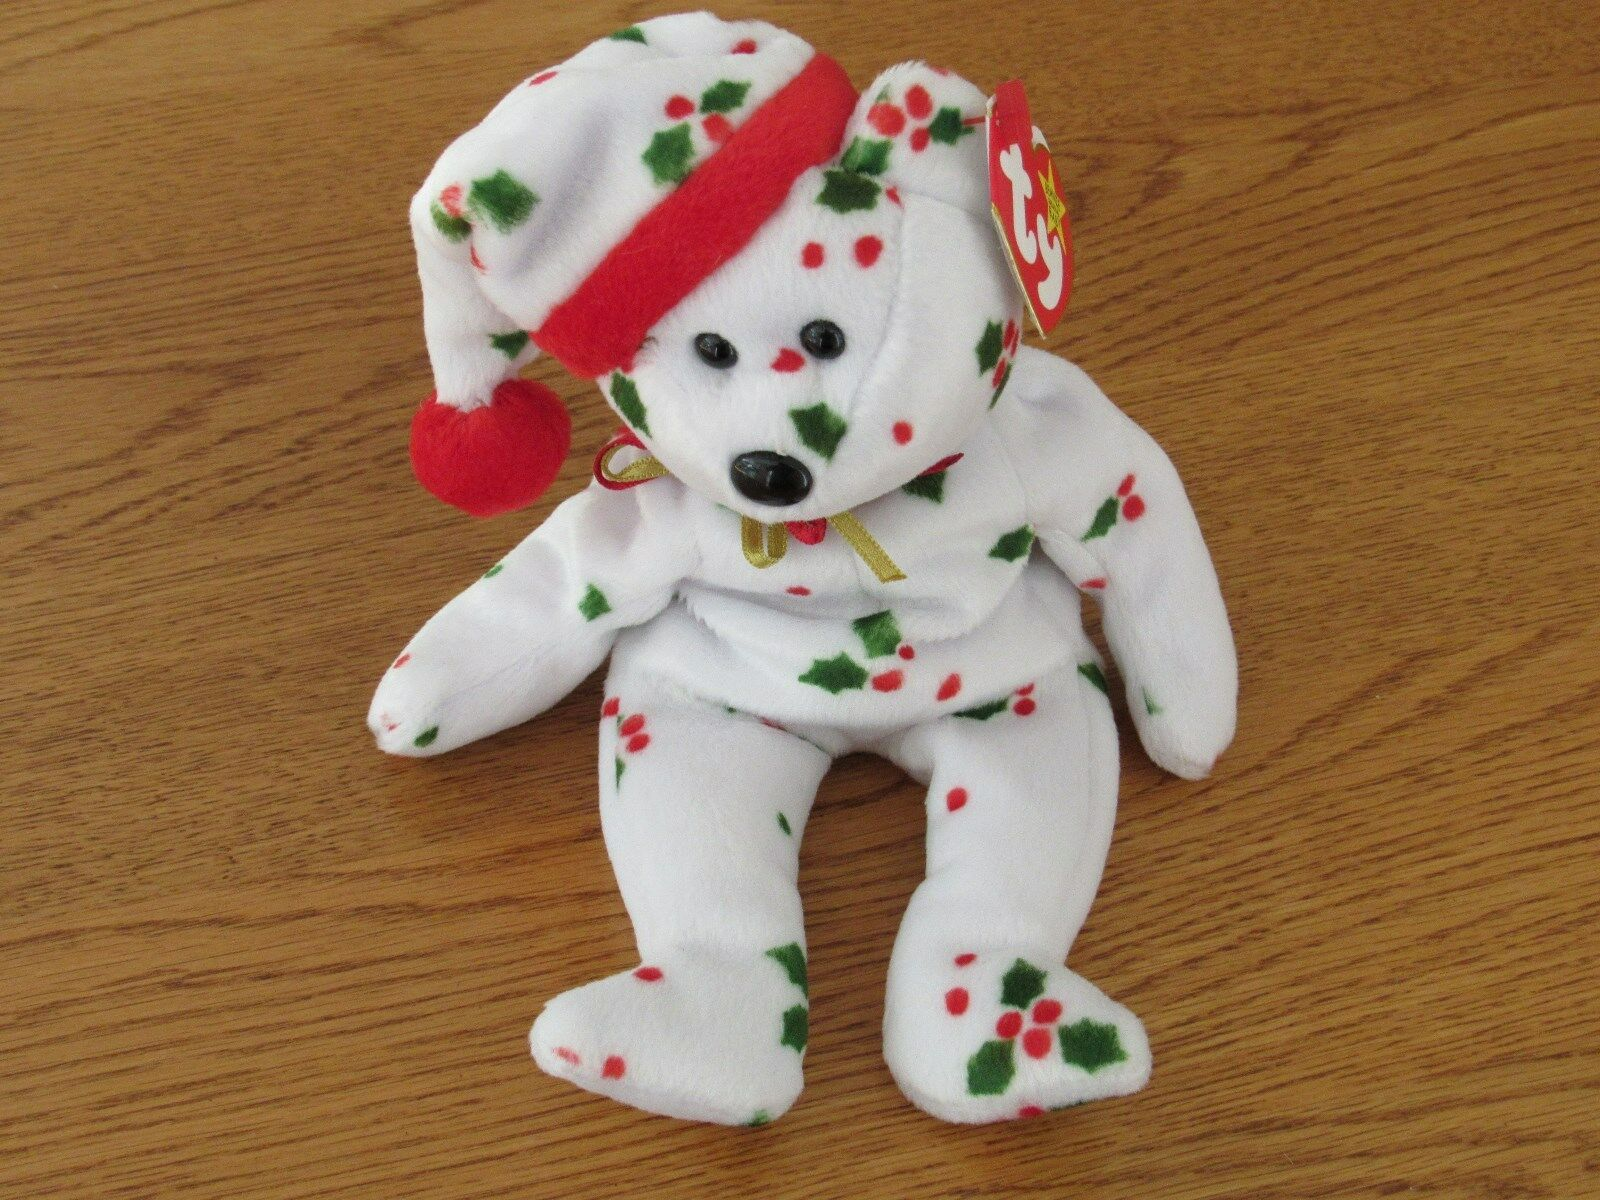 NEW TY Beanie Baby -  1998 Holiday Teddy   The Bear  - 1998 - Retired With Error